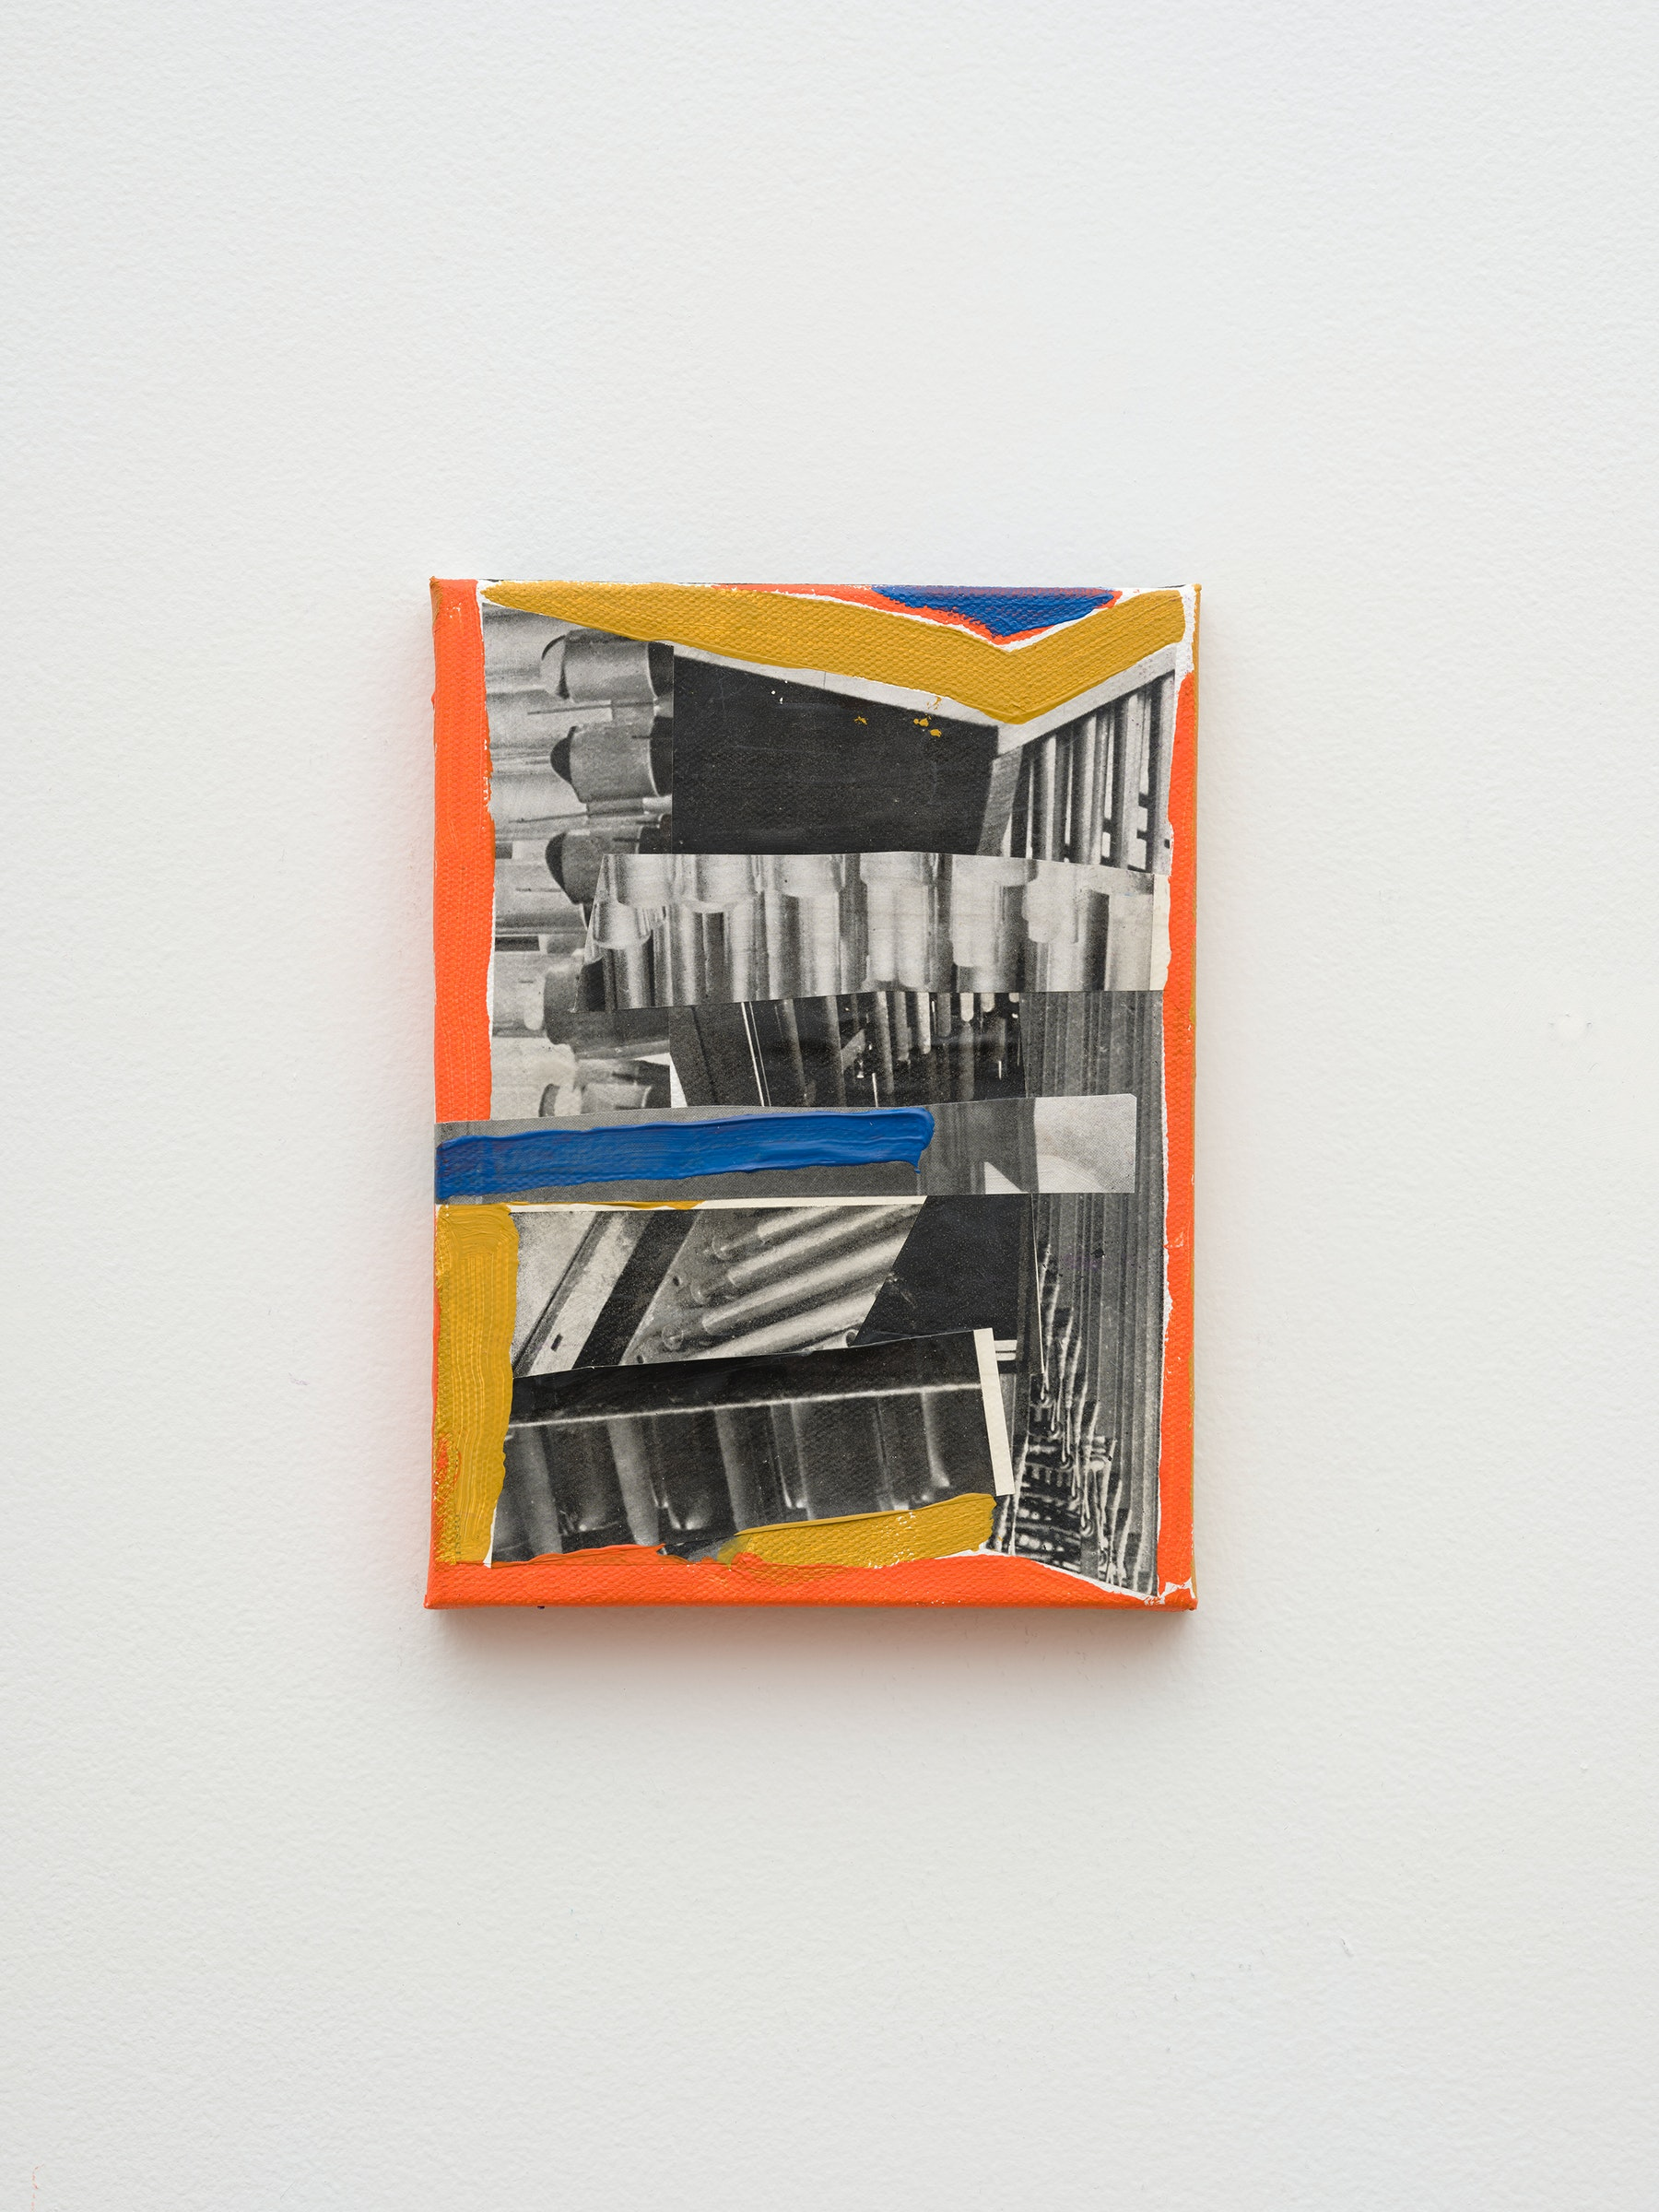 """Steve Roden """"metal,"""" 2020 Mixed media on canvas 8"""" x 6"""" x 1"""" [HxWxD] (20.32 x 15.24 x 2.54 cm) Inventory #ROD689 Courtesy of the artist and Vielmetter Los Angeles Photo credit: Jeff McLane Signed and dated on the back"""